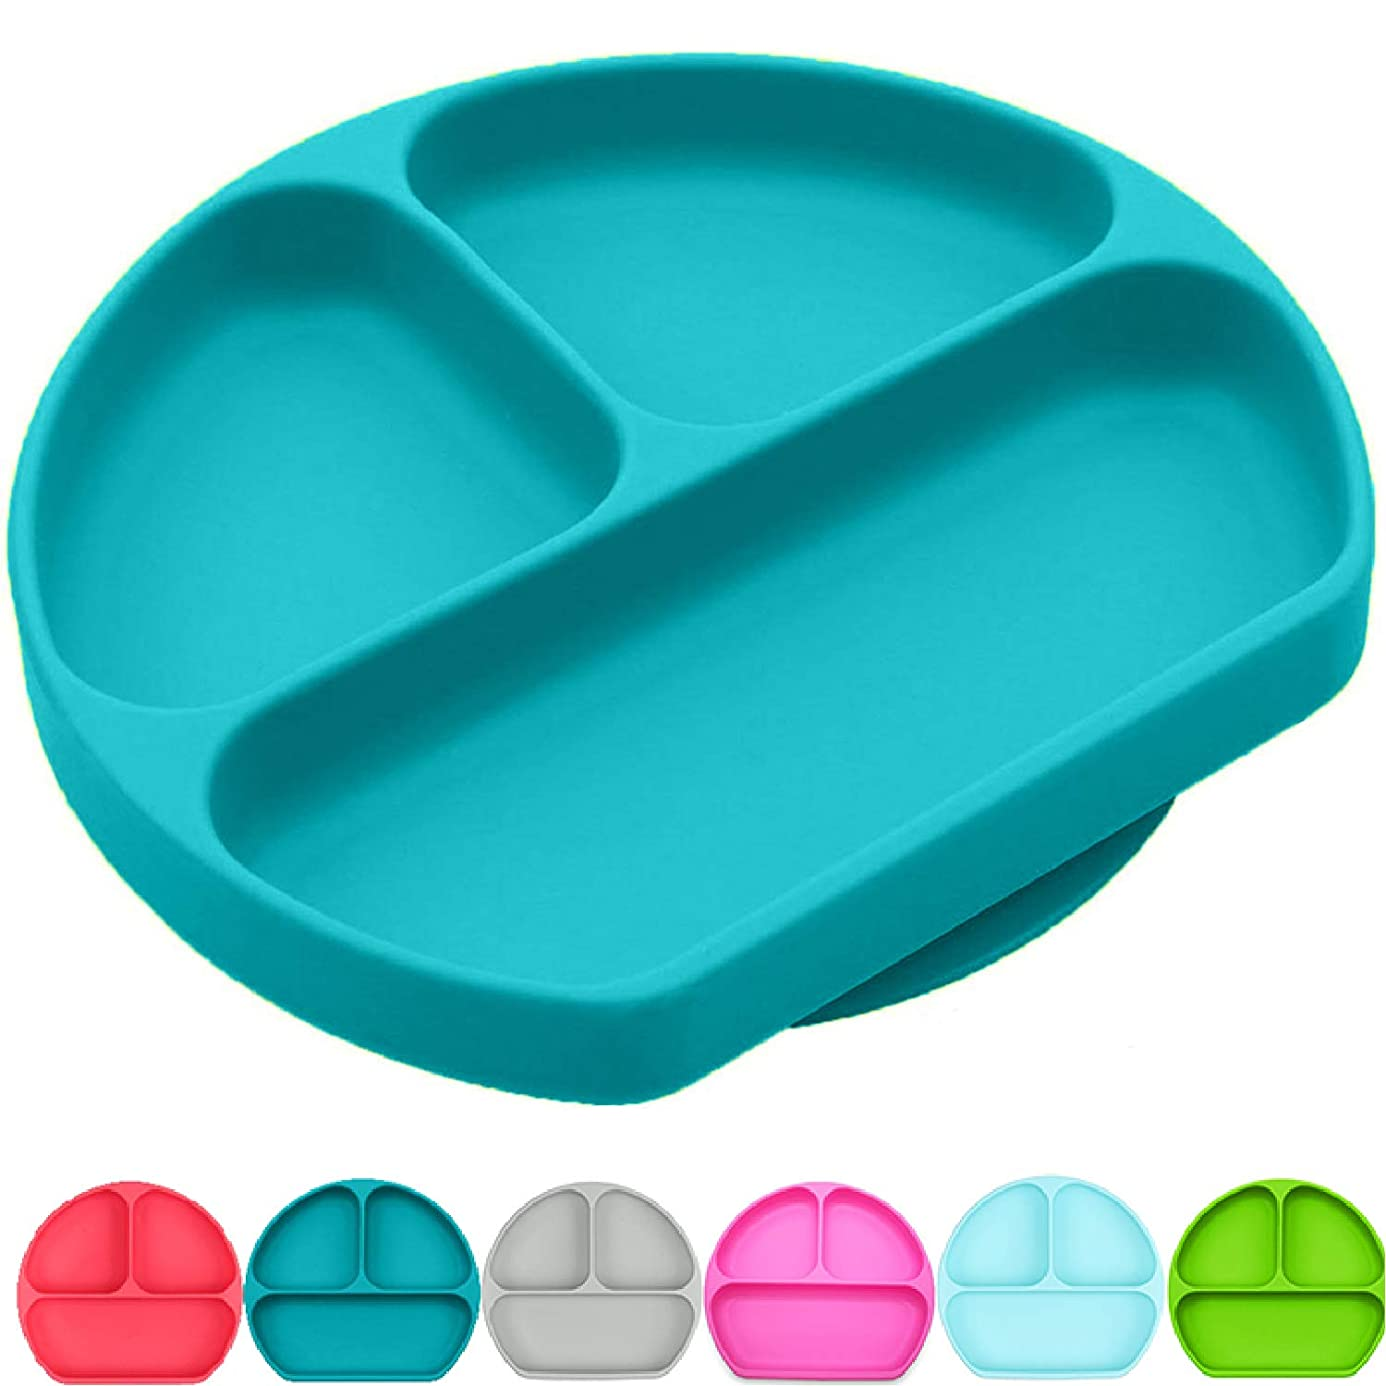 Silikong Suction Plate for Toddlers | BPA Free | Microwave, Dishwasher and Oven Safe | Stay Put Divided Baby Feeding Bowls and Dishes for Kids and Infants (Turquoise)